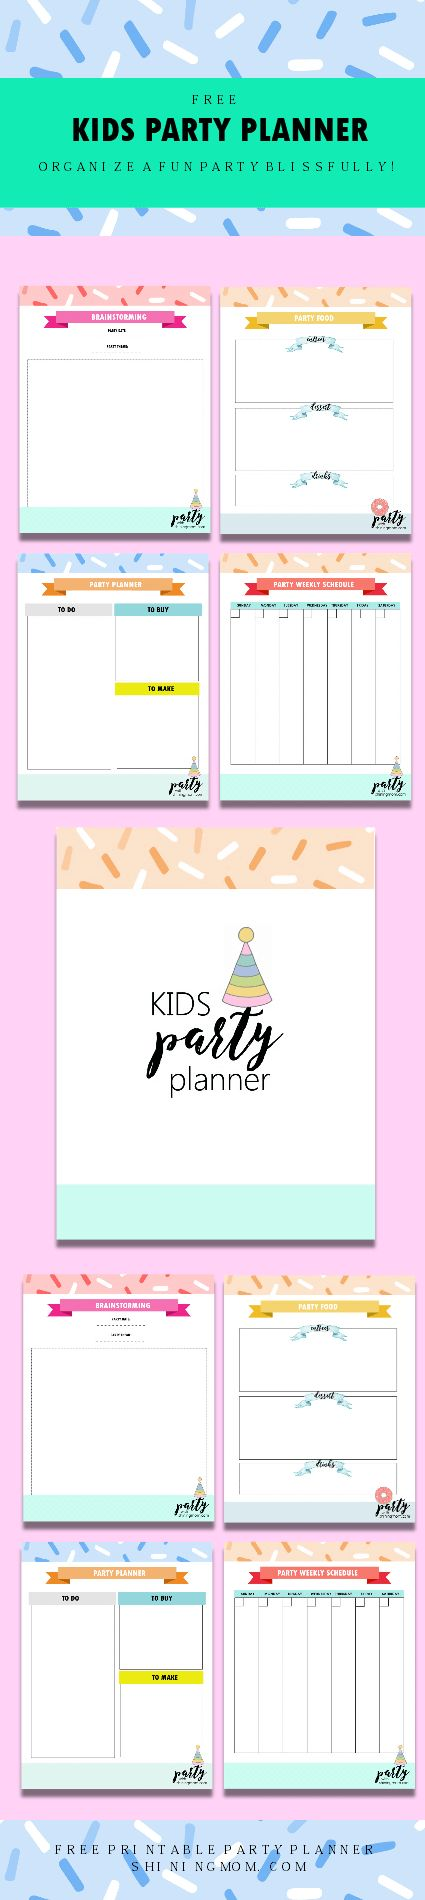 25+ best Kids party planner ideas on Pinterest | Birthday party ...